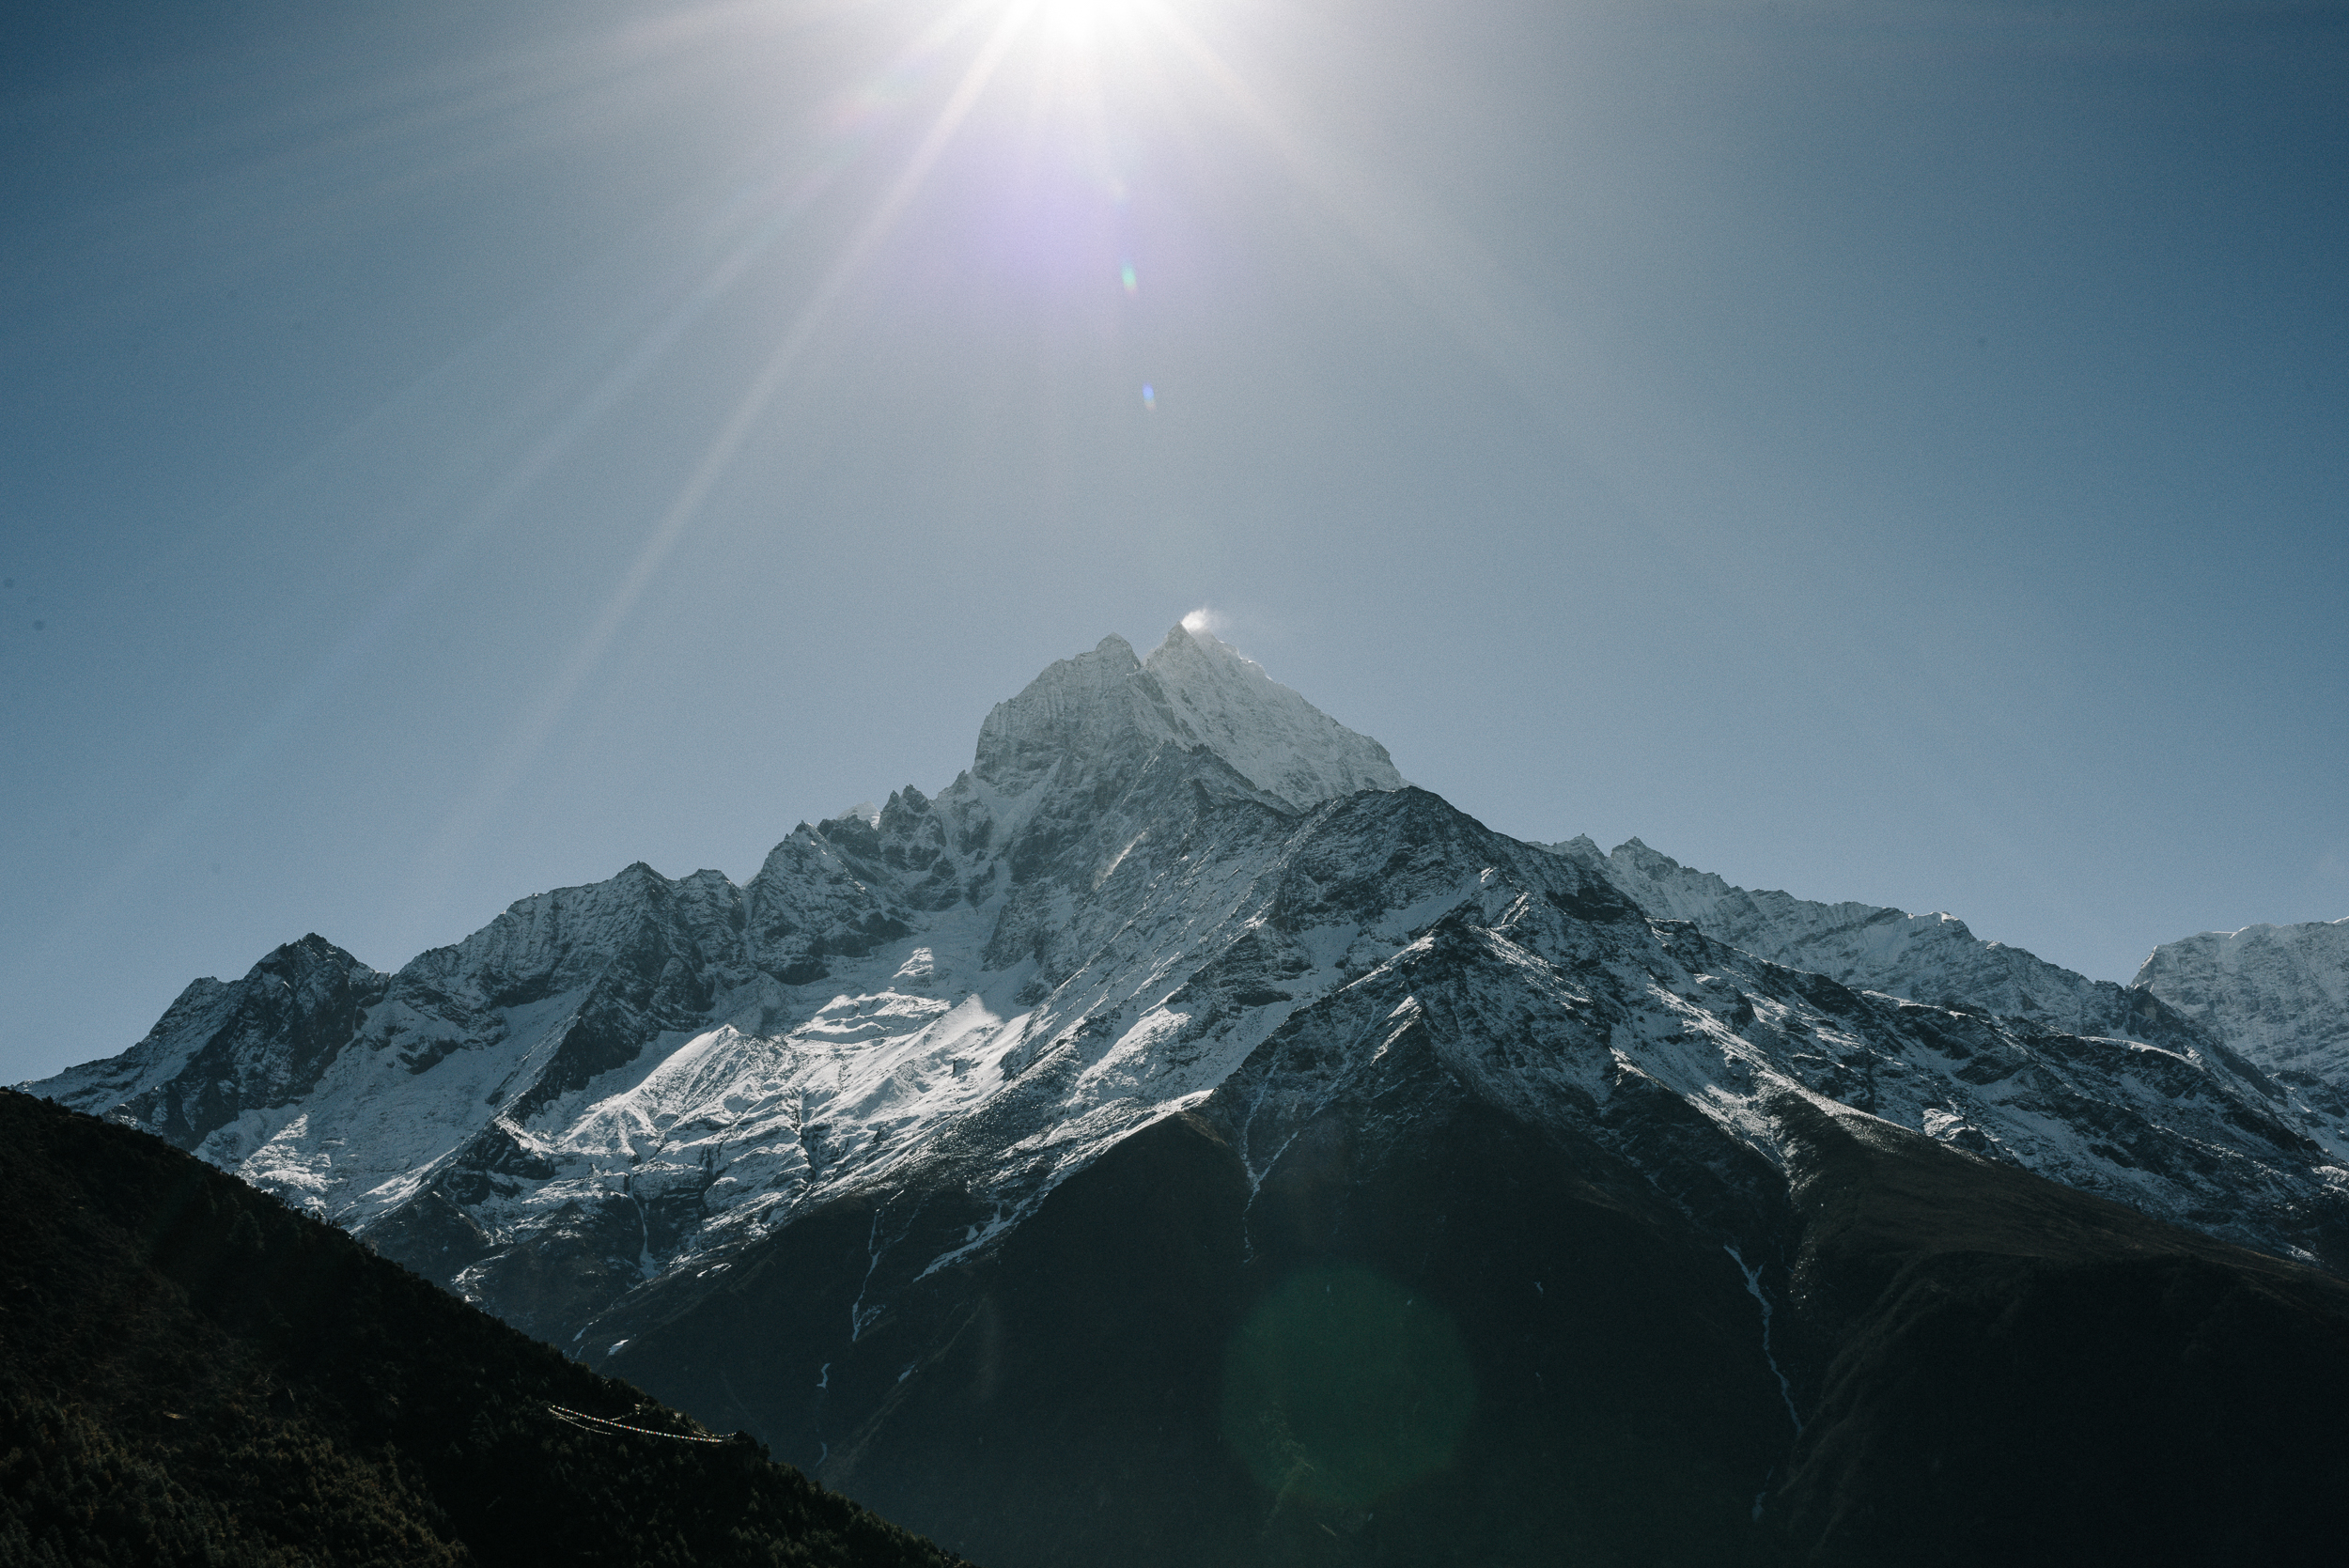 Nepal_EverestBaseCamp_2019_TaraShupe_Photography_DSC_3774.jpg